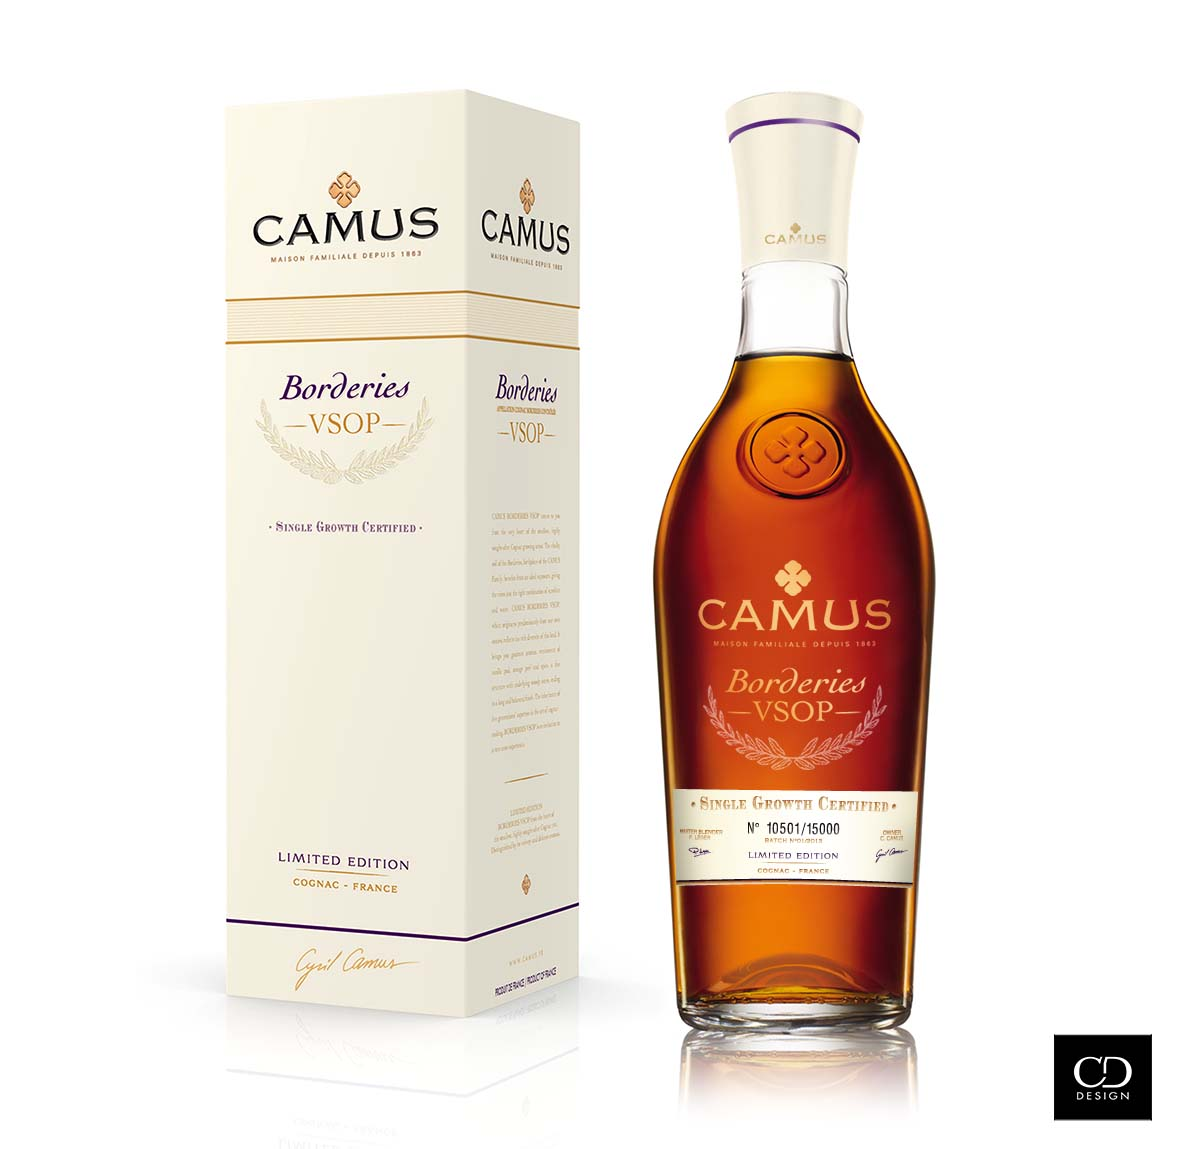 CAMUS Borderies VSOP Limited Edition 2013